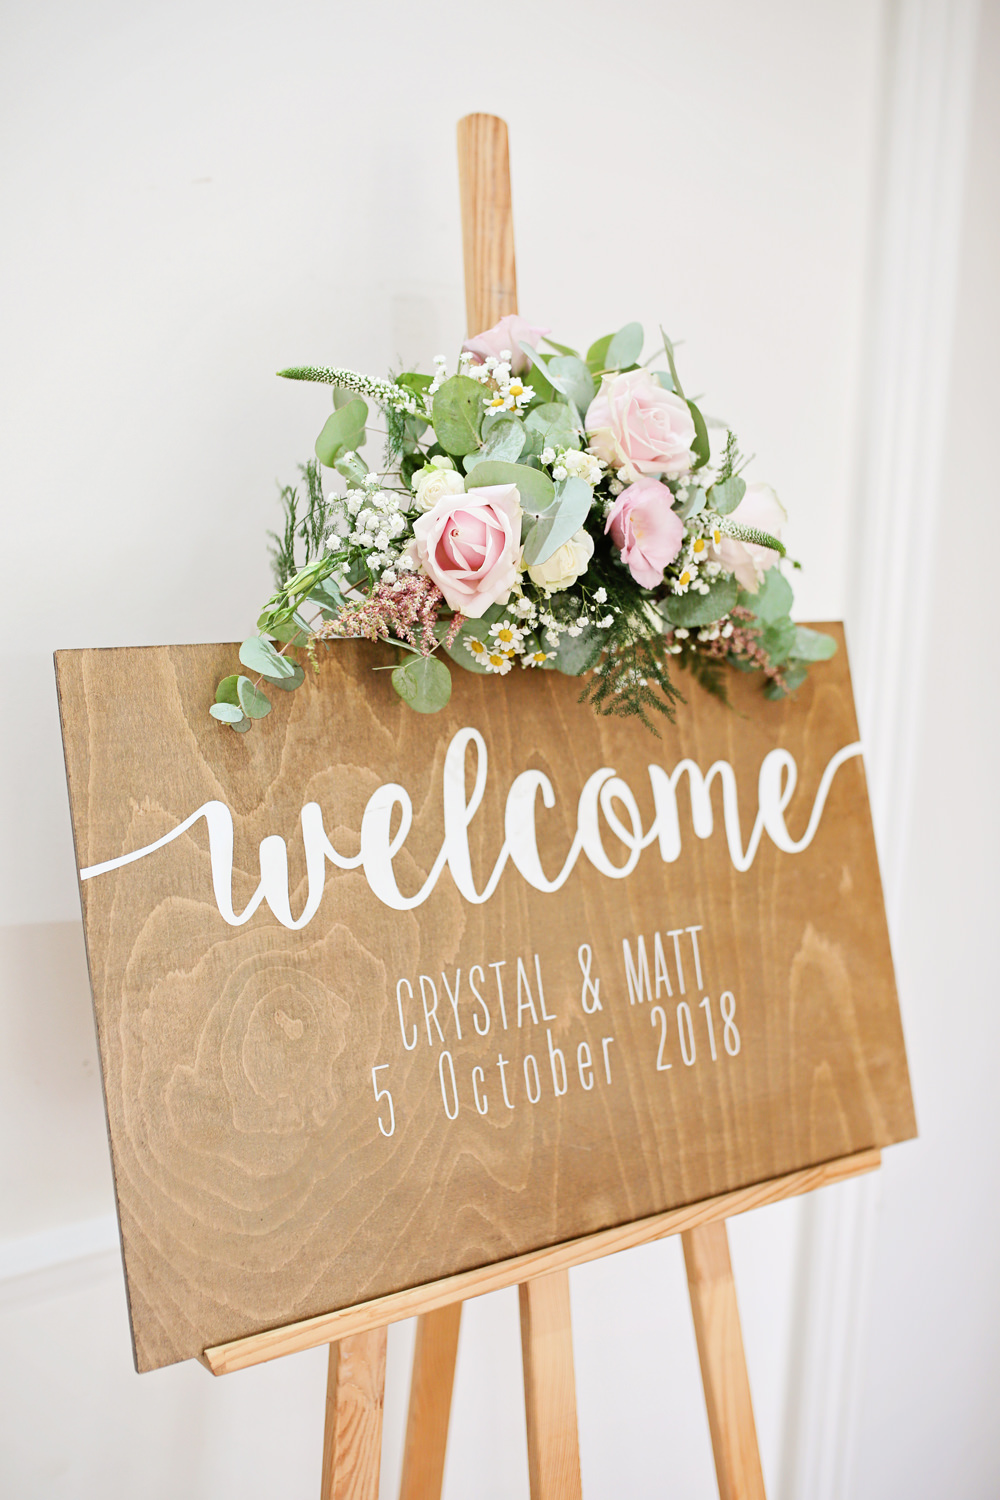 Wooden Sign Signage Calligraphy Lettering Welcome Flowers Milling Barn Wedding Victoria Mitchell Photography